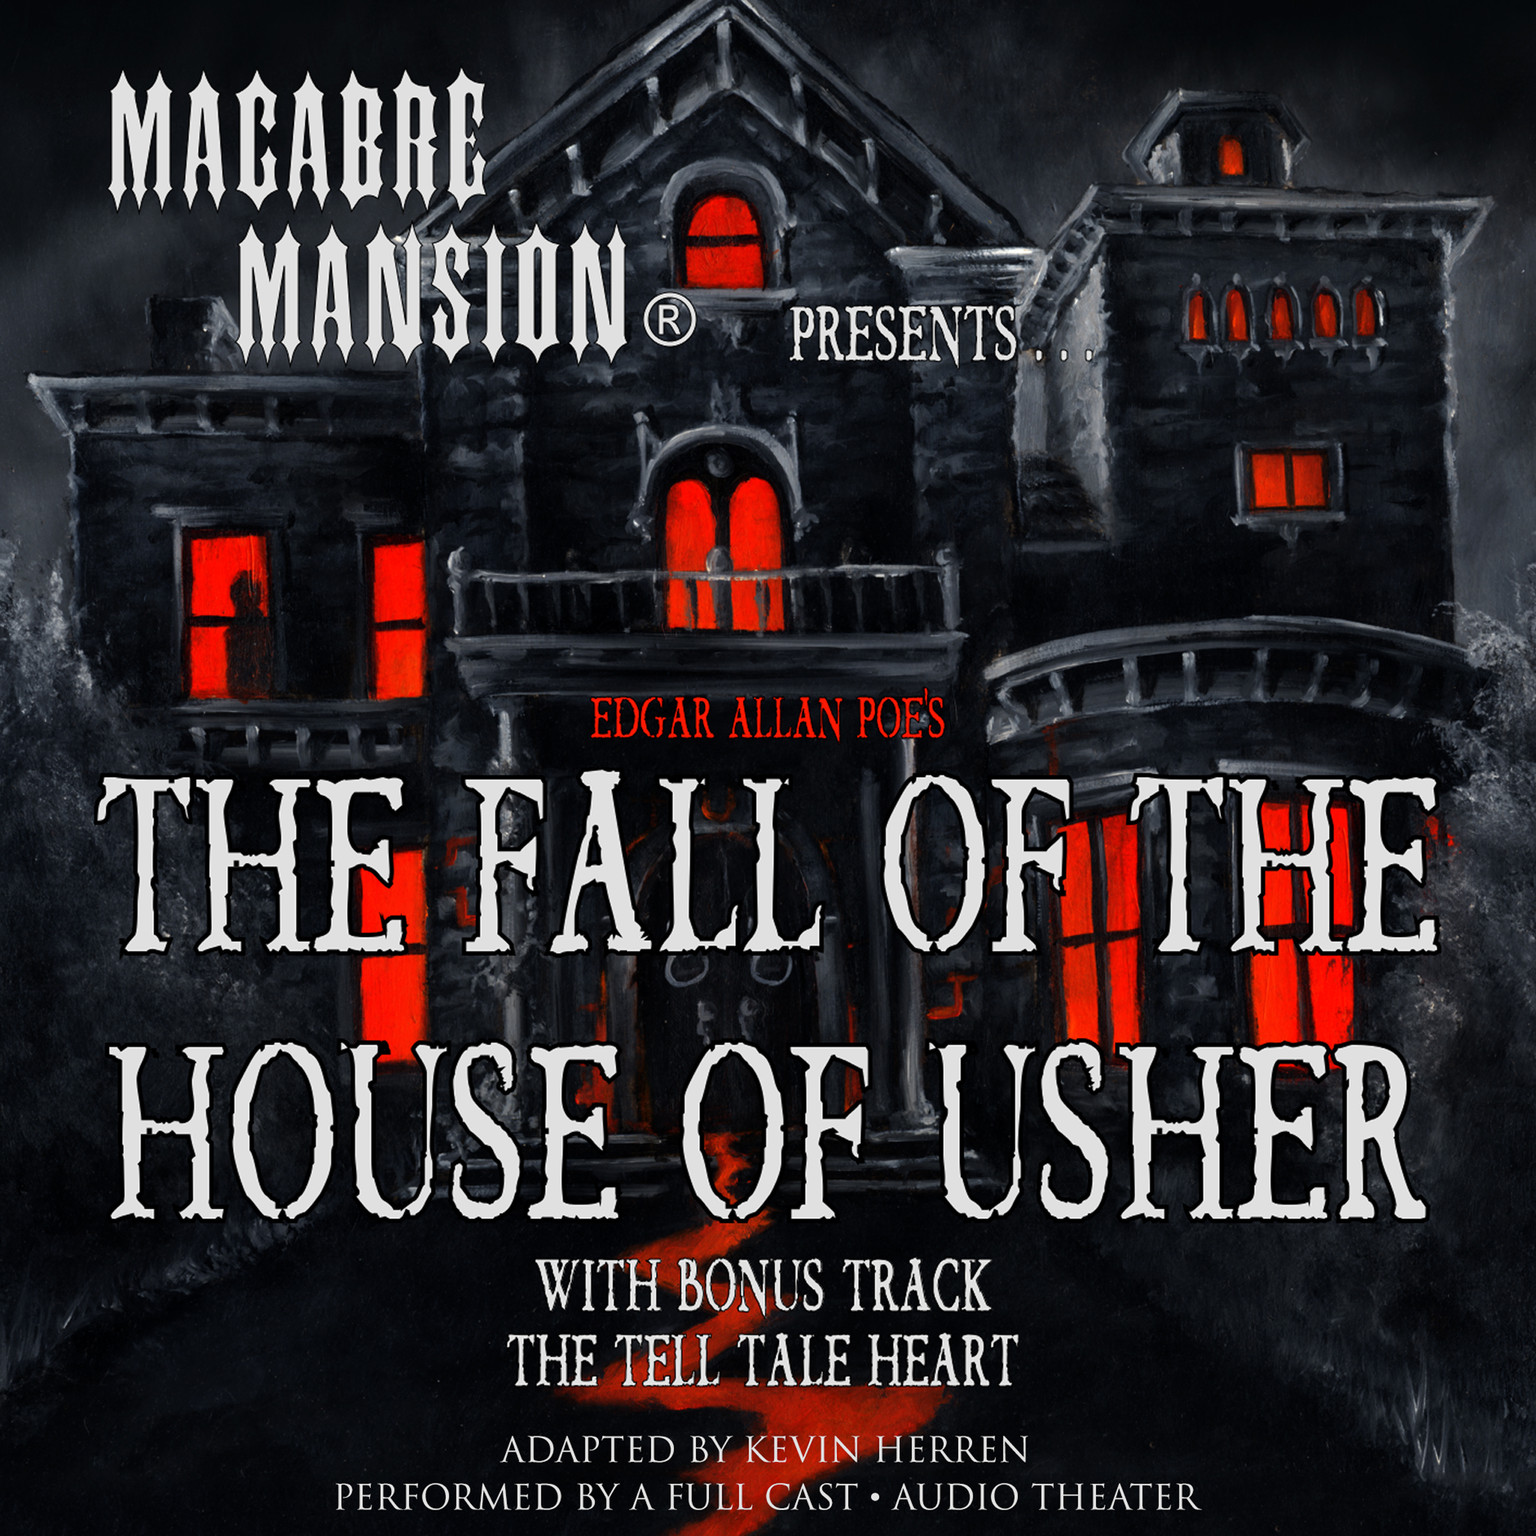 essay about the fall of the house of usher Free essay: the fall of the house of usher is a short story written by edgar allen poe in 1839 the short story is complexly written, with challenging themes.